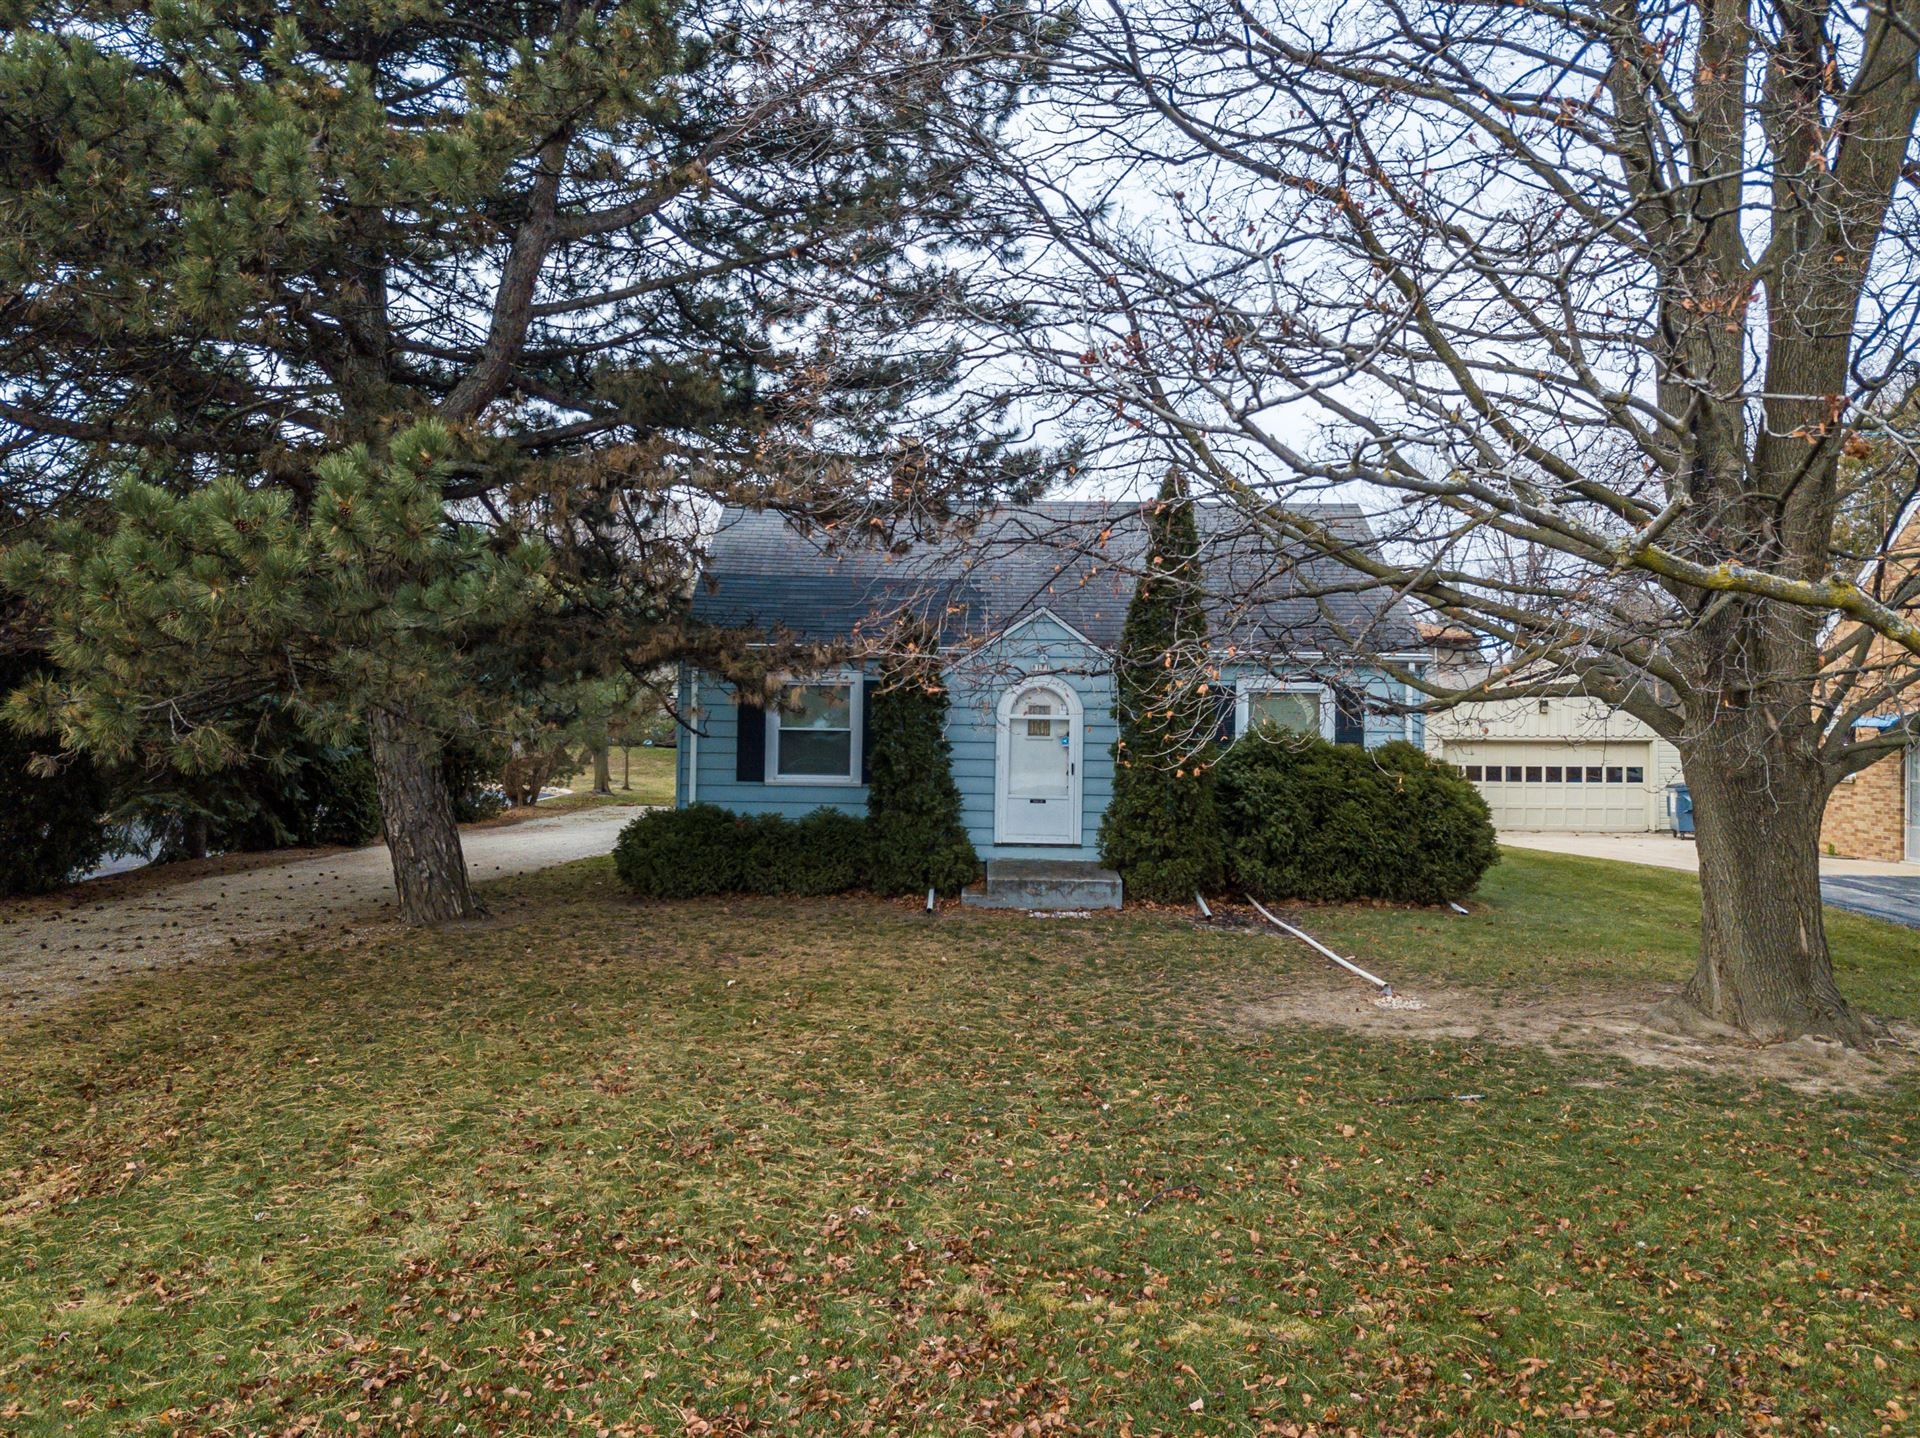 8171 S 27th St, Franklin, WI 53132 - #: 1720150